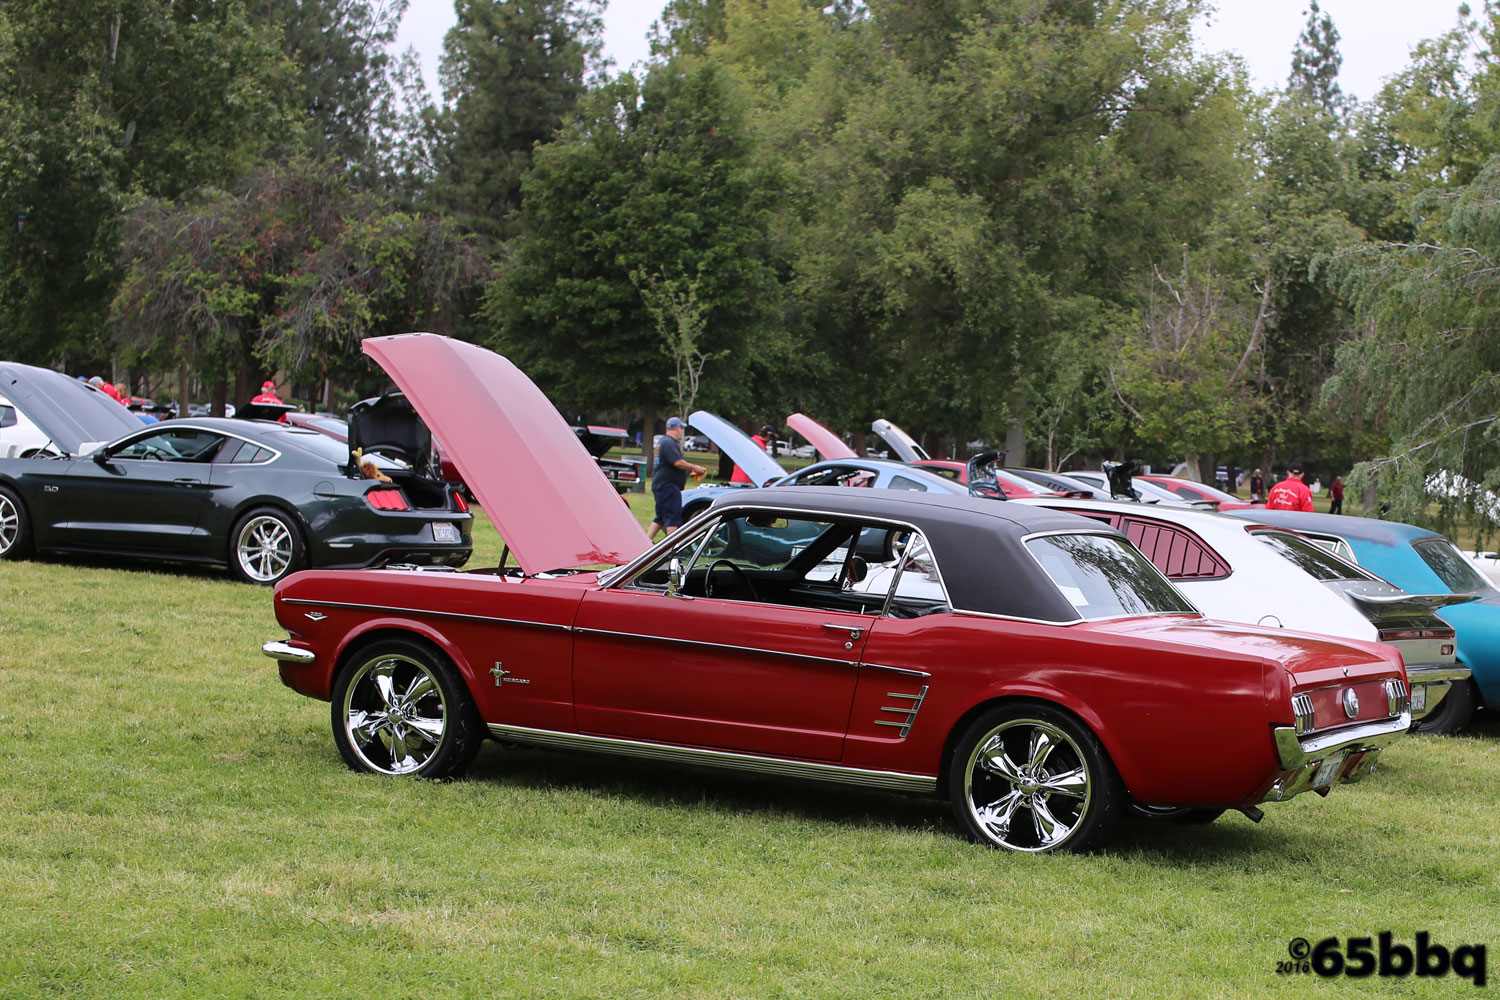 warners-2016-car-show-mustang-1245.jpg